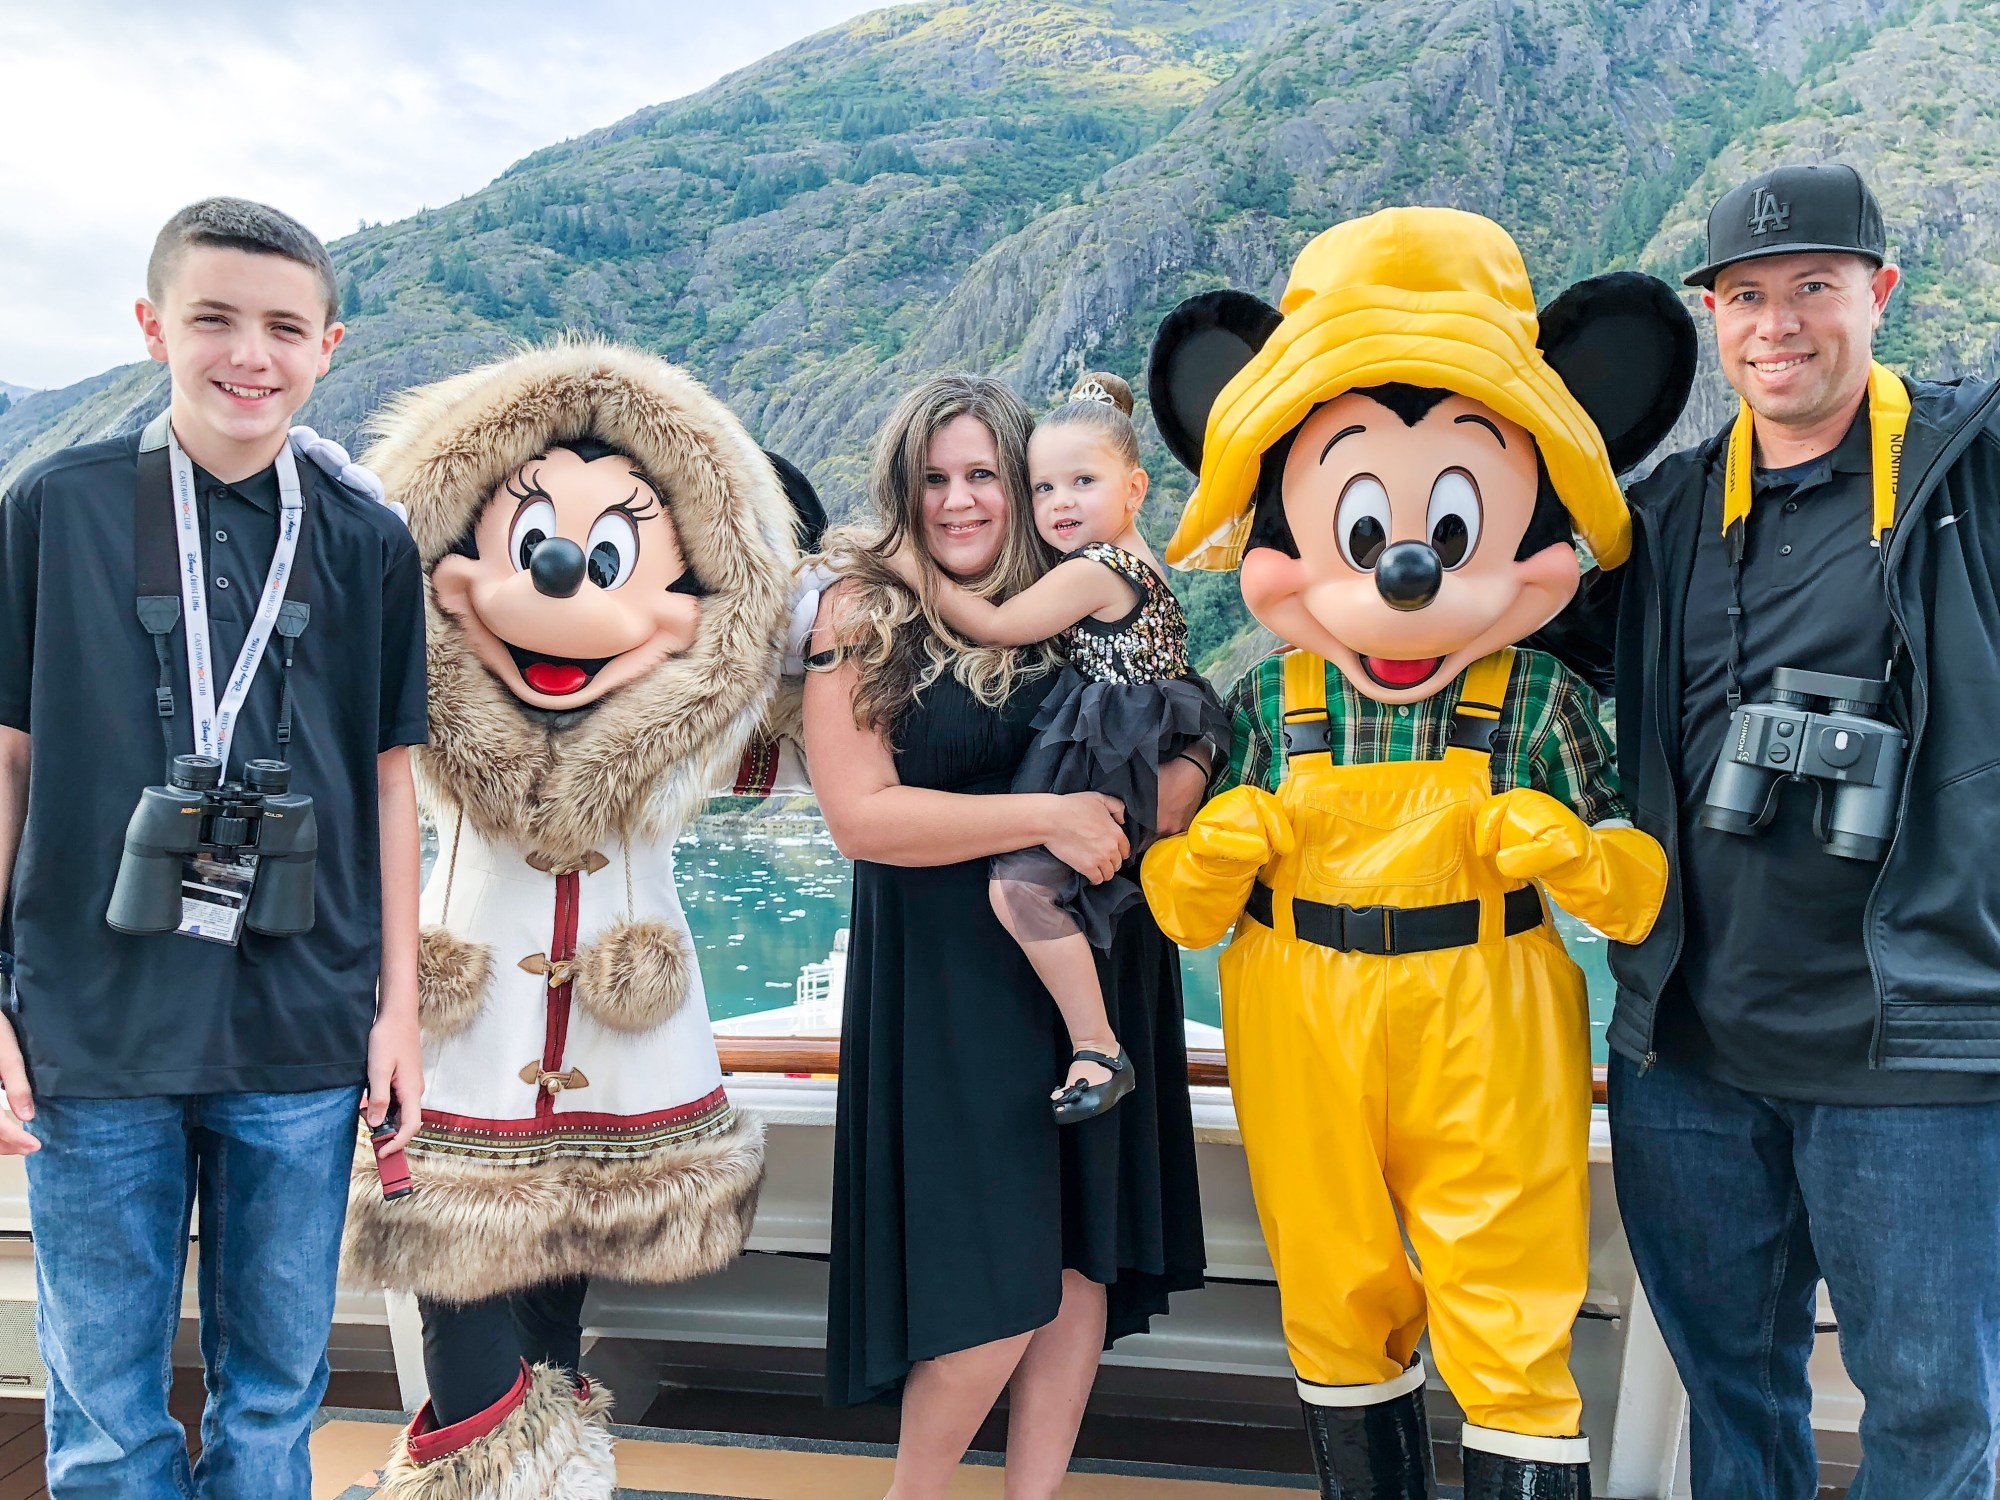 Disney Cruise Line Alaskan Cruise: A 7 Day Adventure Through Alaska